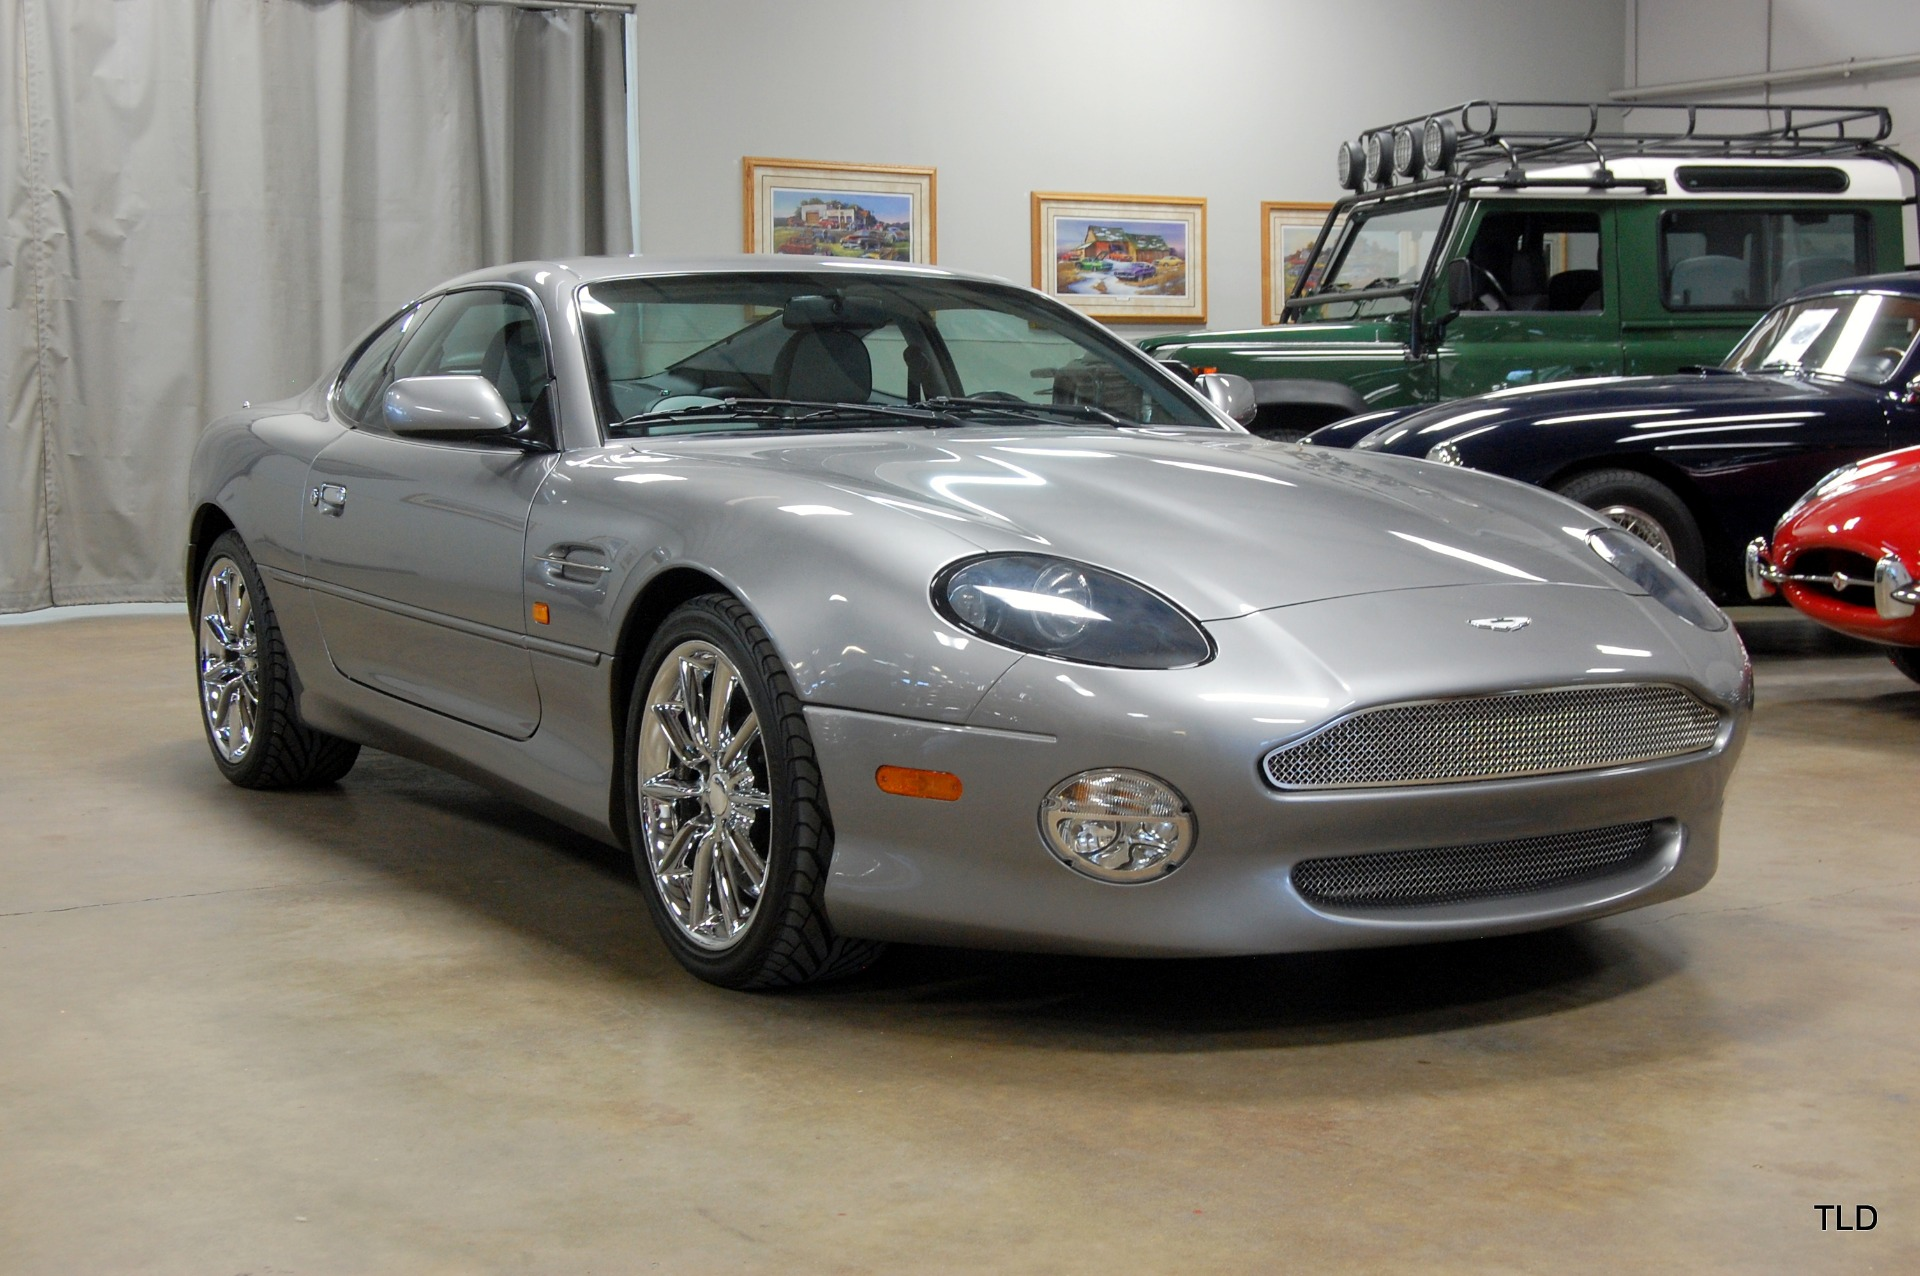 2002 Aston Martin DB7 Vantage: 2 OWNER - LOW MILES - FLAWLESS CONDITION - MANUALS - SERVICE HISTORY - CHARGER